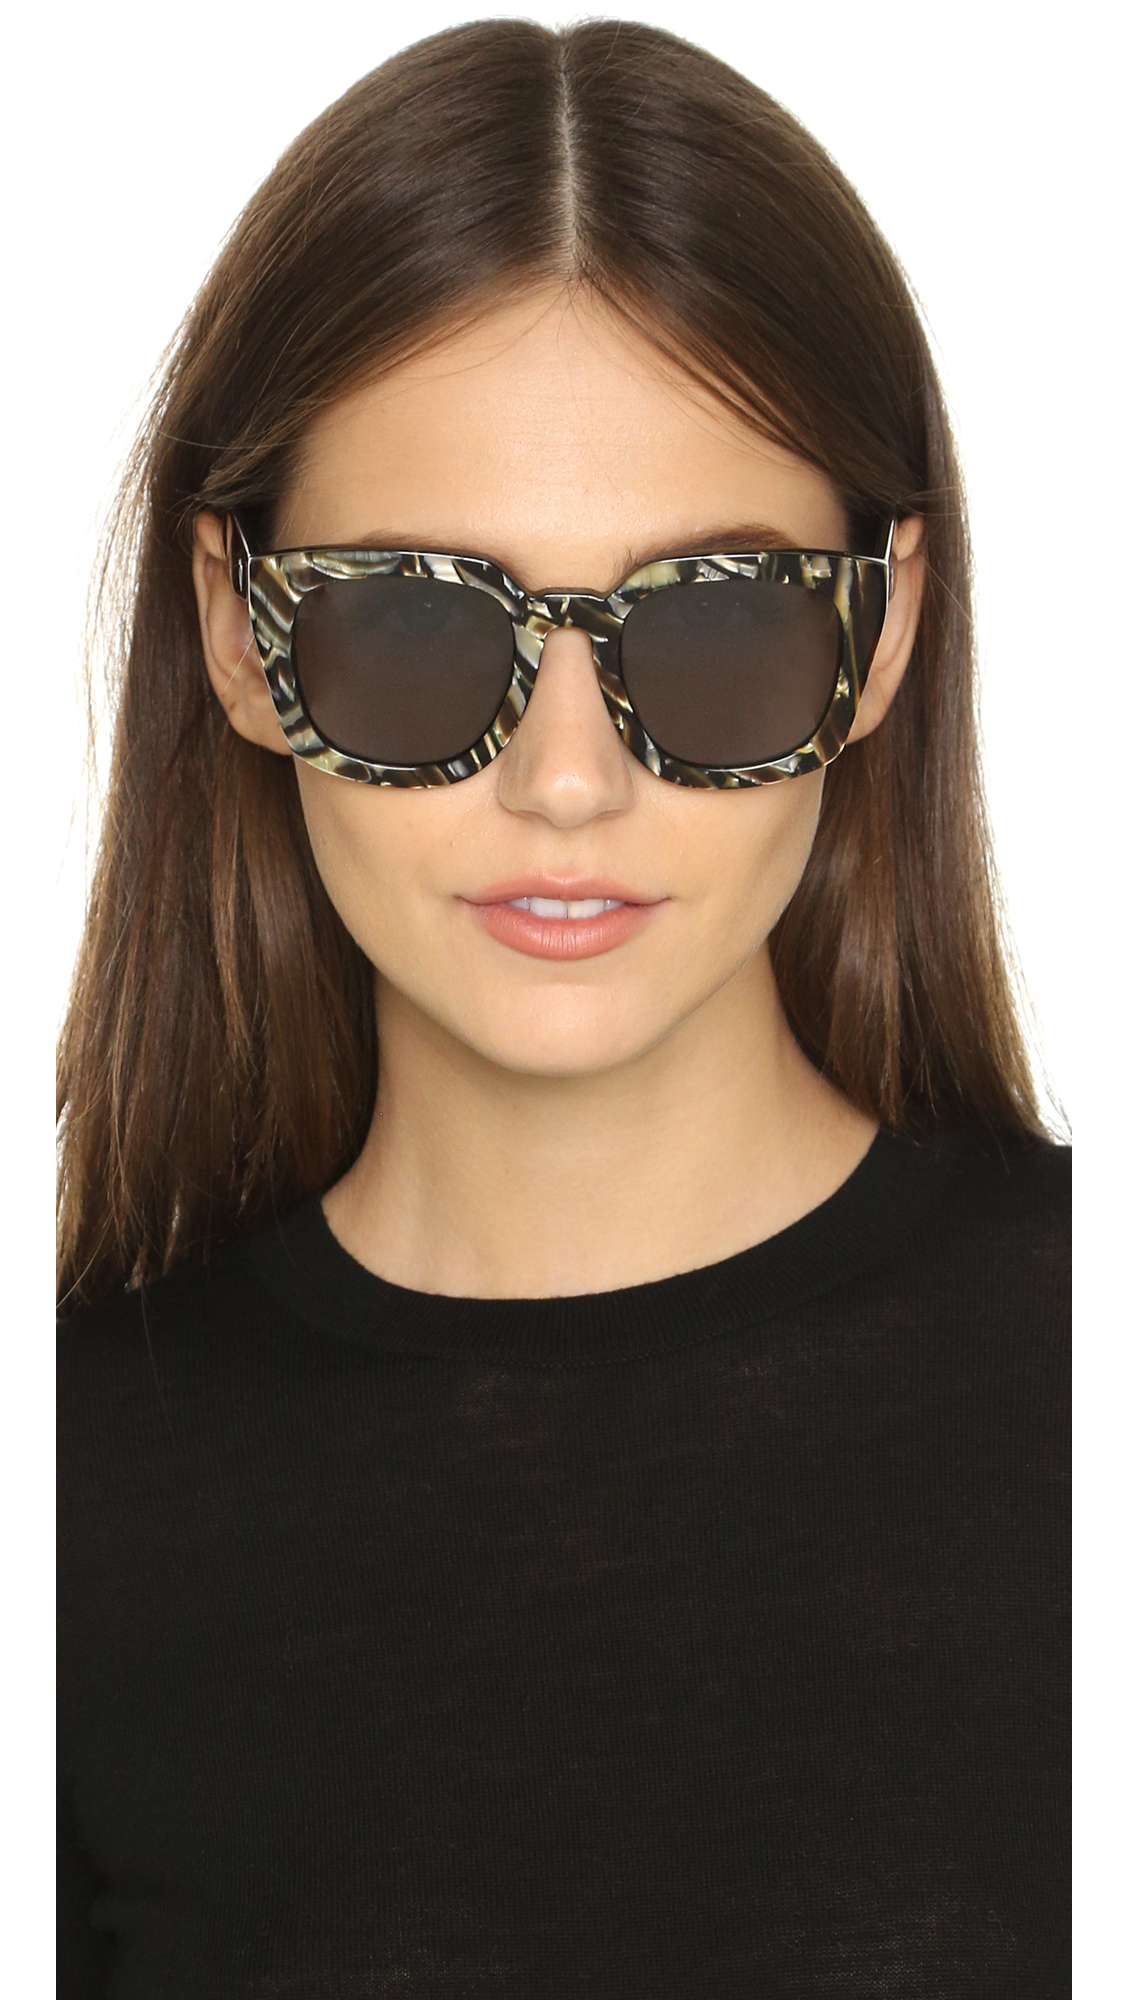 585c365912 Valley Eyewear Orbis Sunglasses in White - Lyst